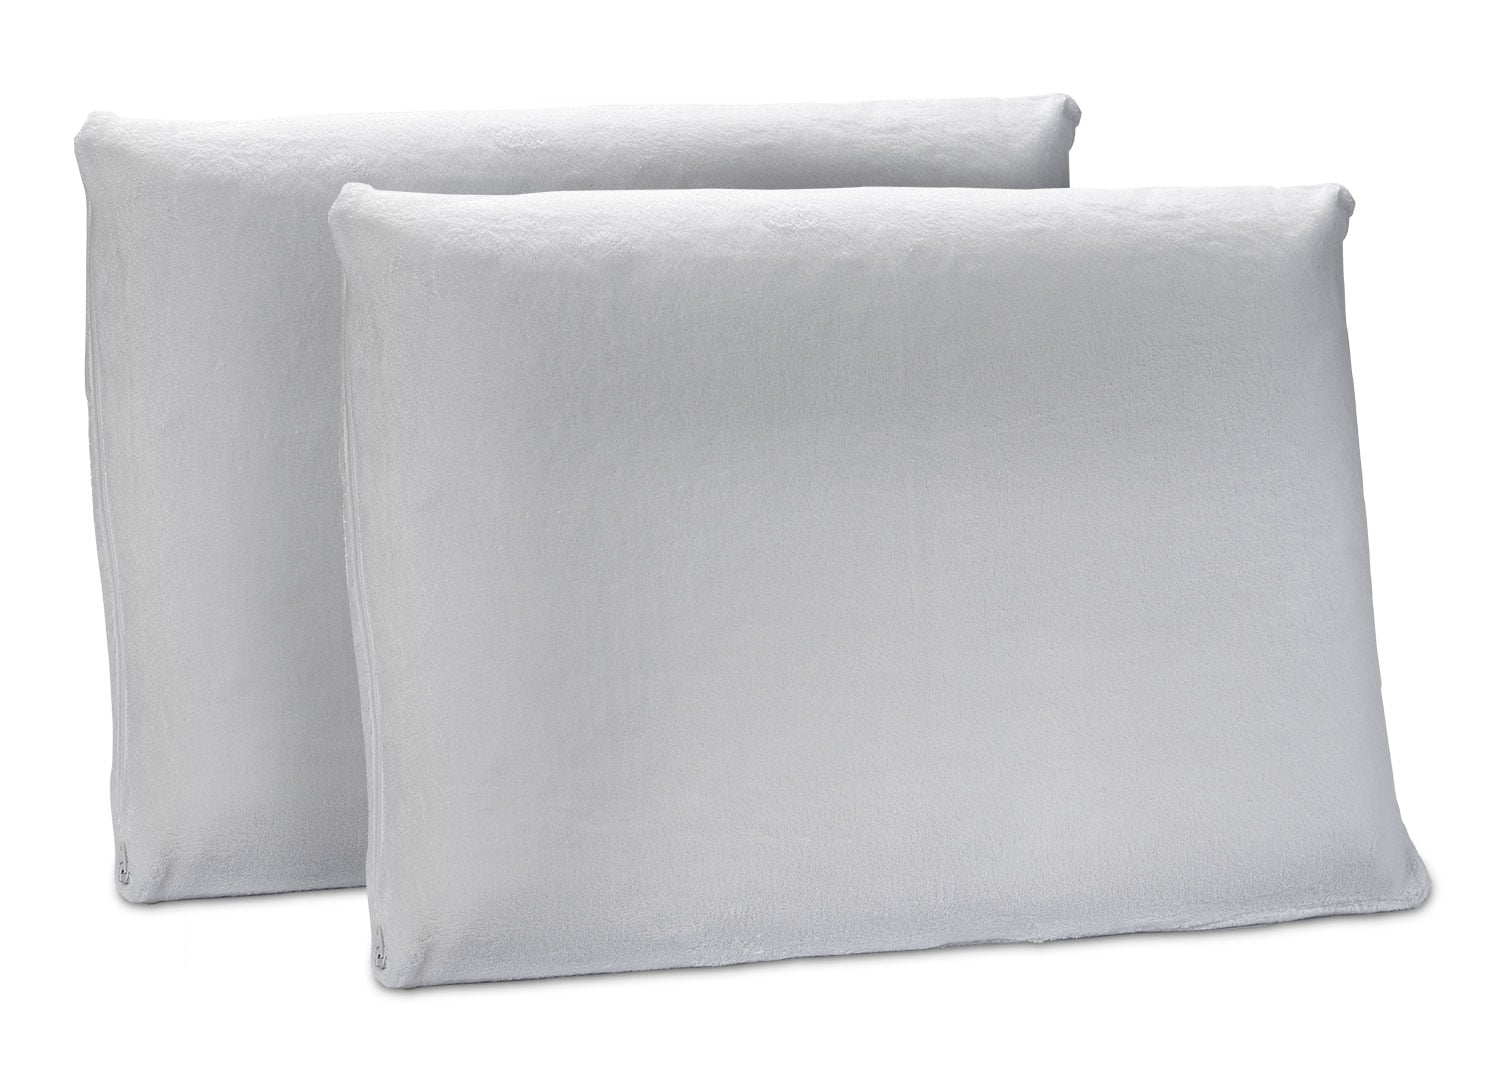 Mattresses and Bedding - Ergo Utopia 2 Pc. Pillow Set